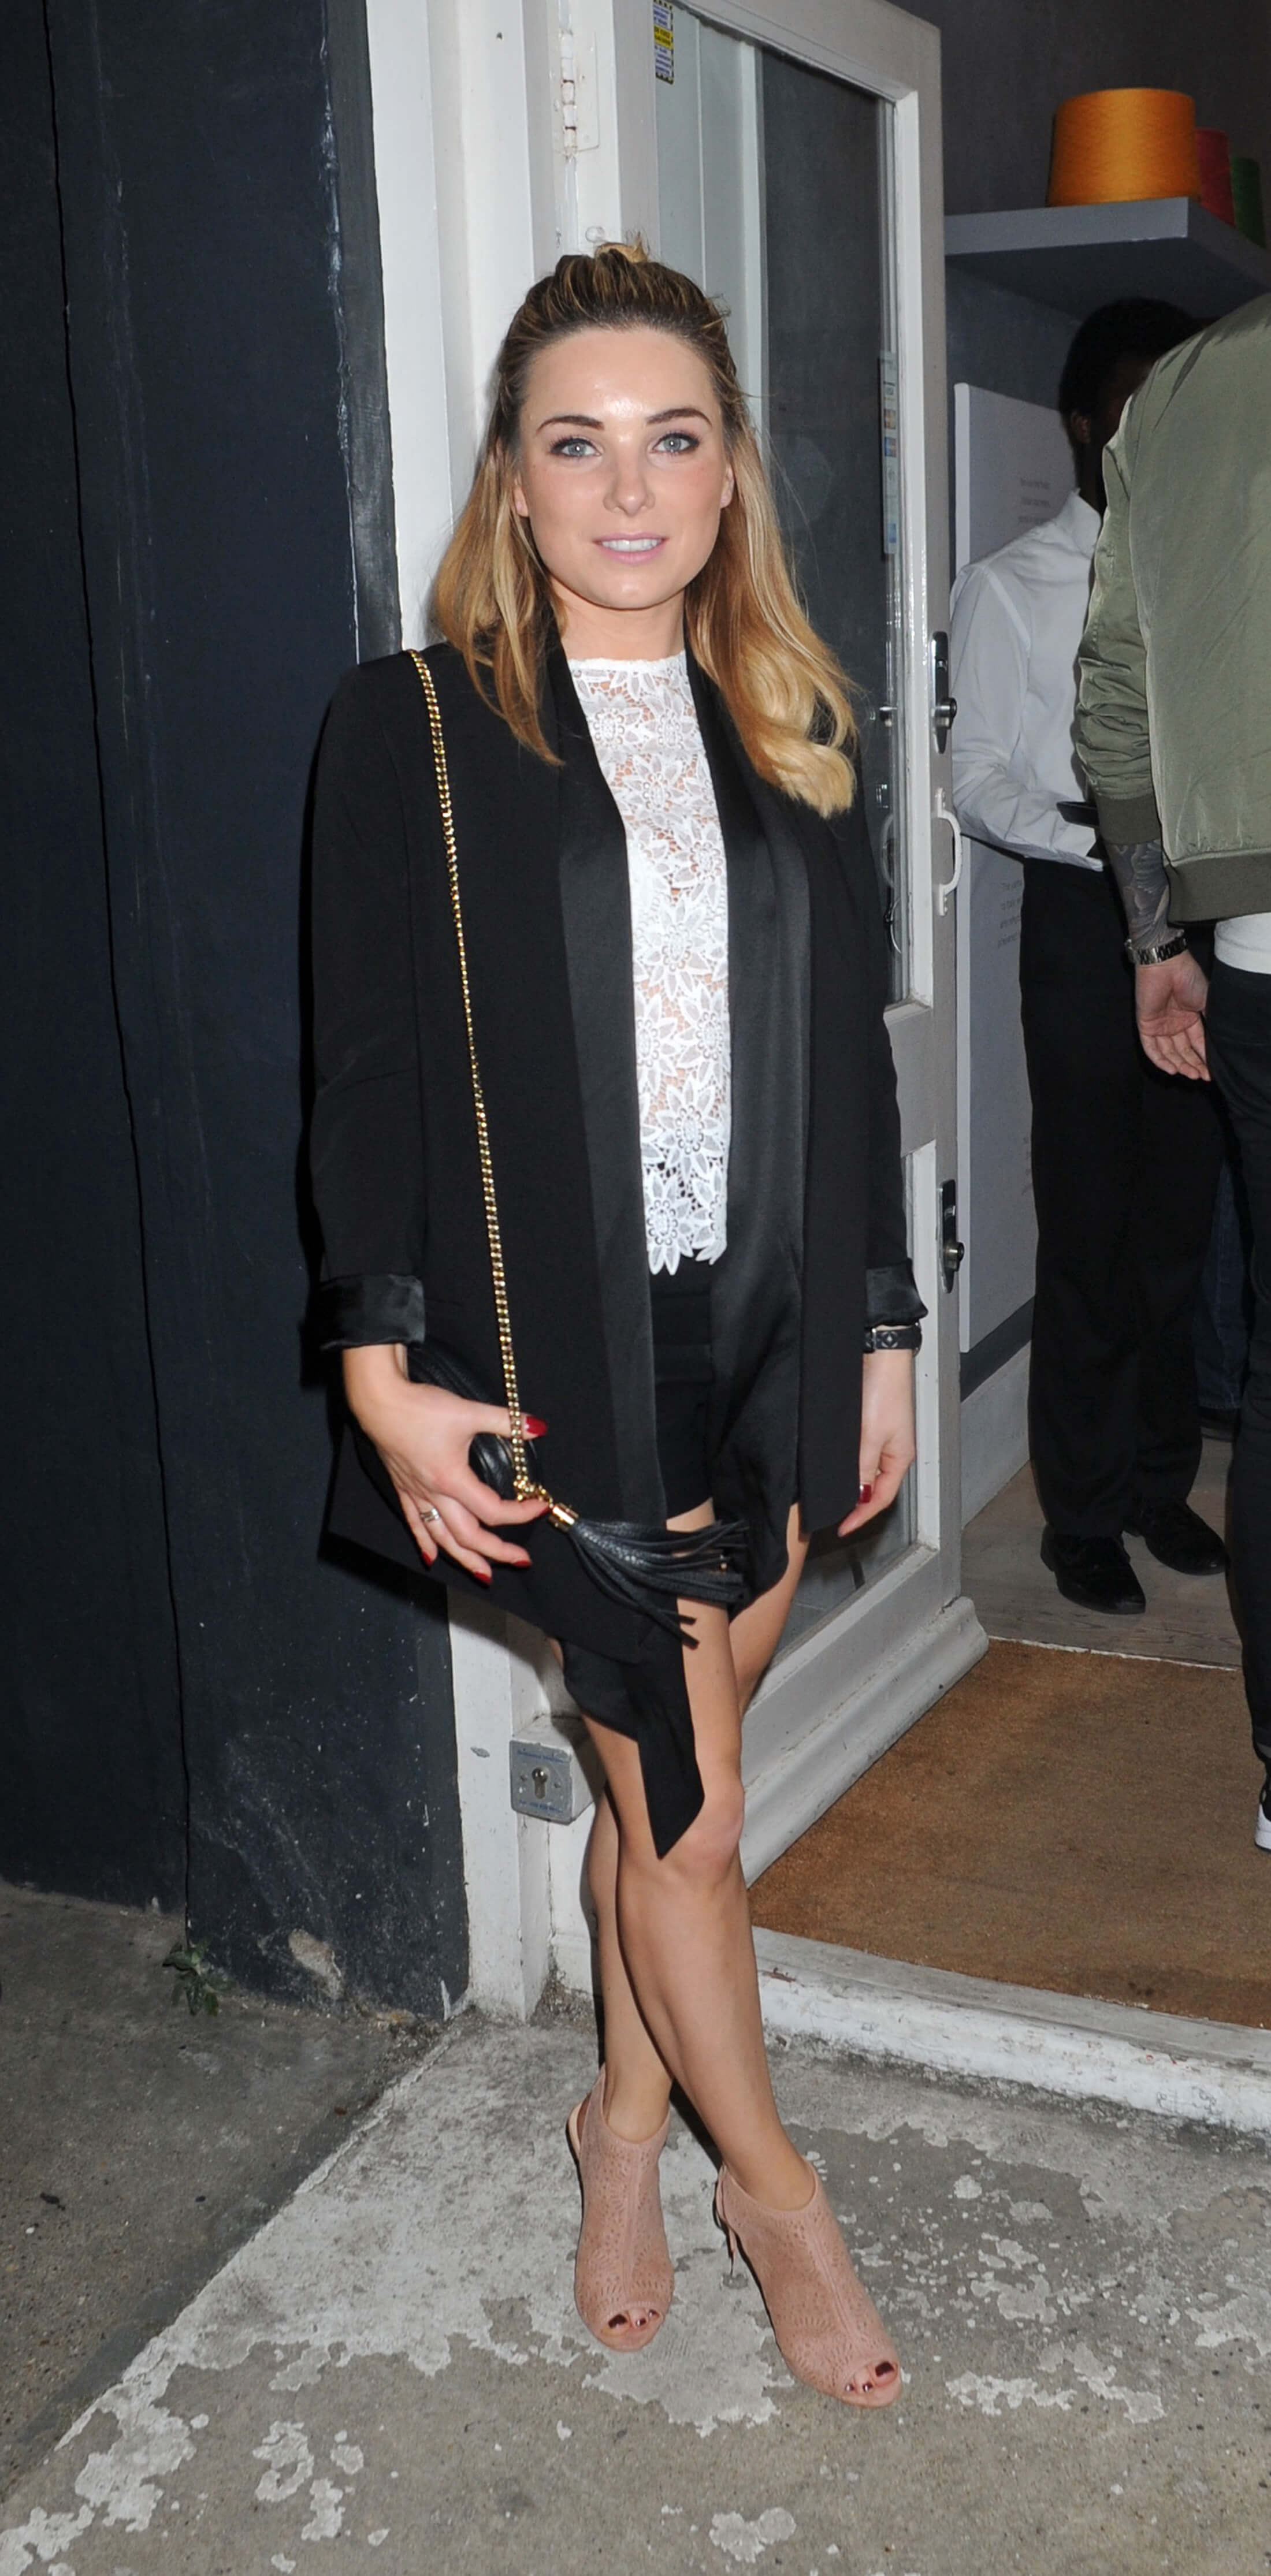 Sian Welby at DELAM Luxury Cashmere Brand Launch Event